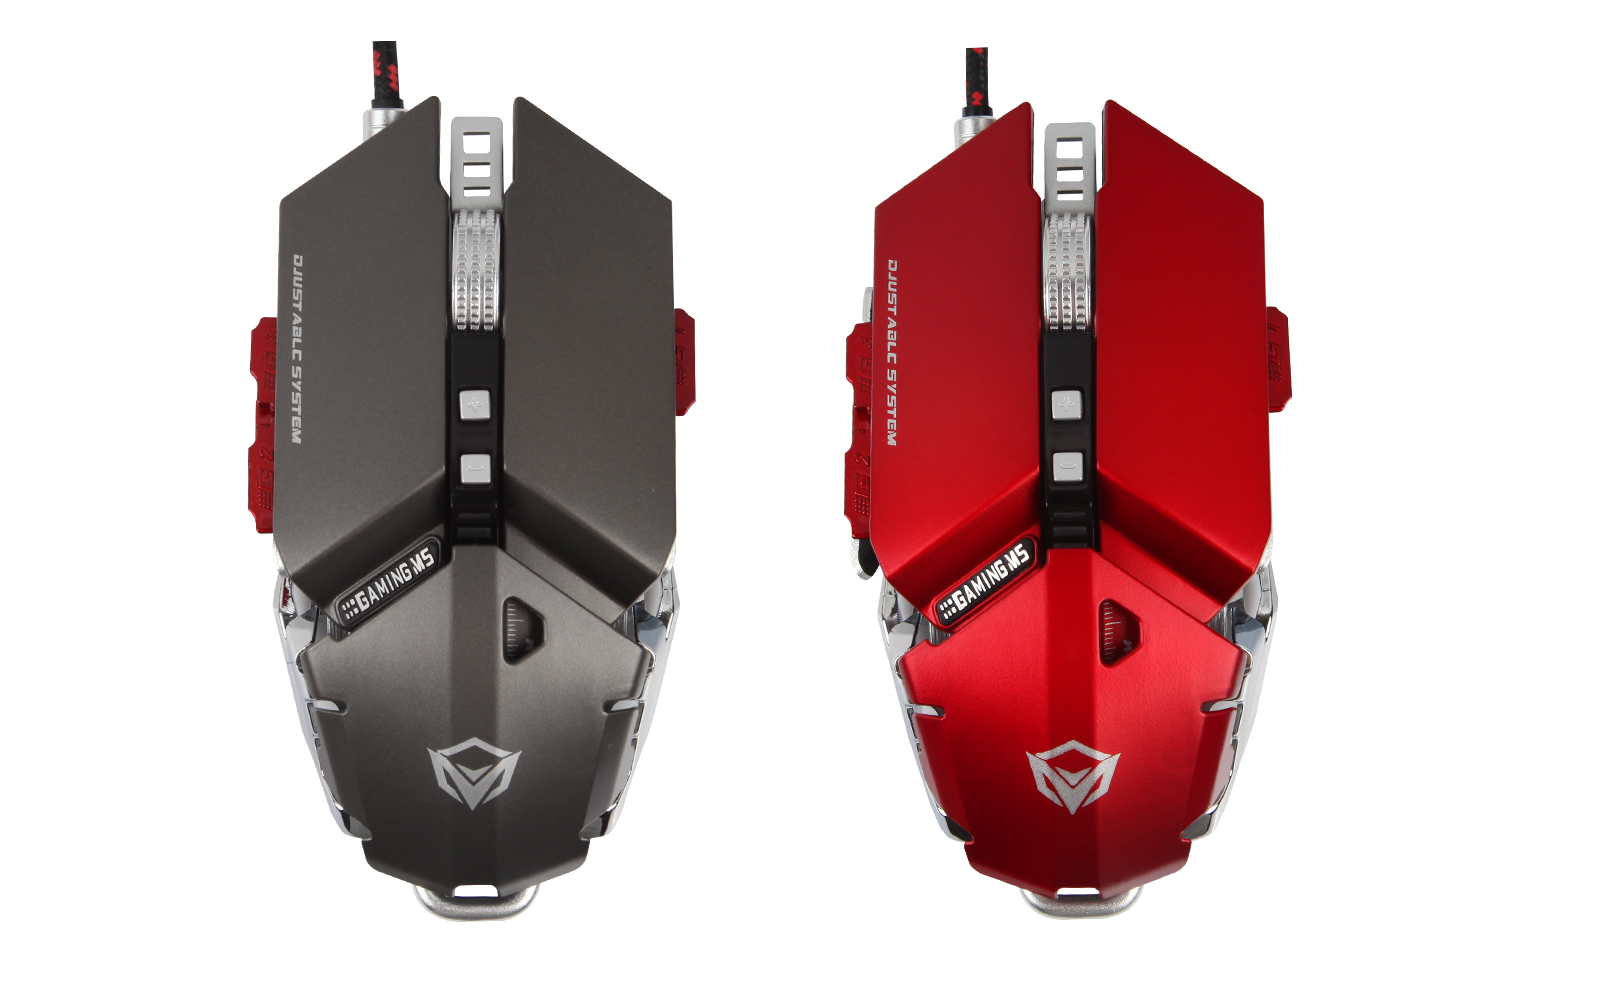 Mouse Meetion M985 Grey Optical USB - Gaming